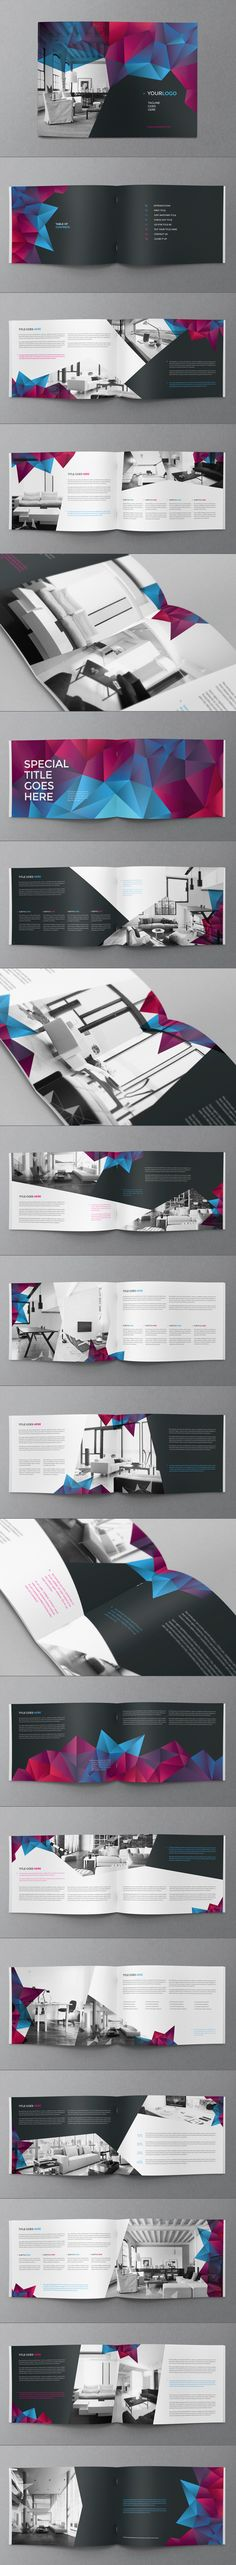 Buy Cool Modern Brochure by AbraDesign on GraphicRiver. COOL MODERN BROCHURE This brochure is an ideal way to showcase your business in an original way. Layout Design, Design Typo, Graphisches Design, Design Poster, Print Layout, Print Design, Logo Design, Branding Design, Modern Design